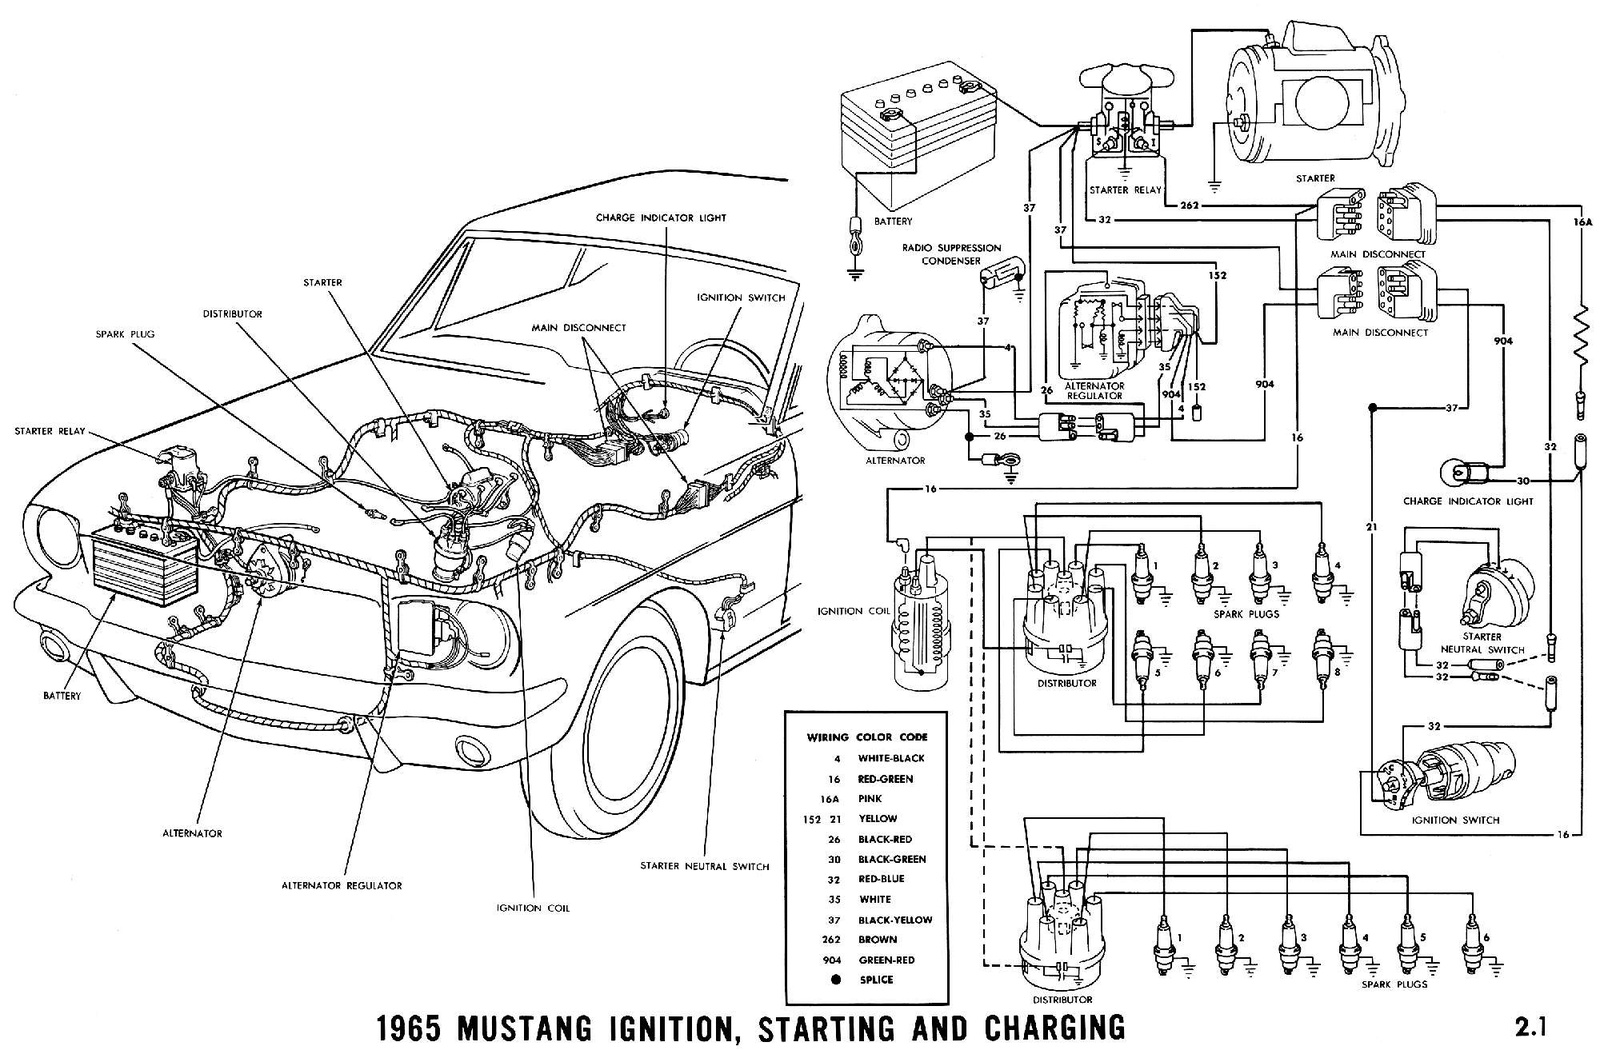 Stupendous 65 Mustang Ignition Wiring Diagram Wiring Diagram Tutorial Wiring Cloud Favobieswglorg